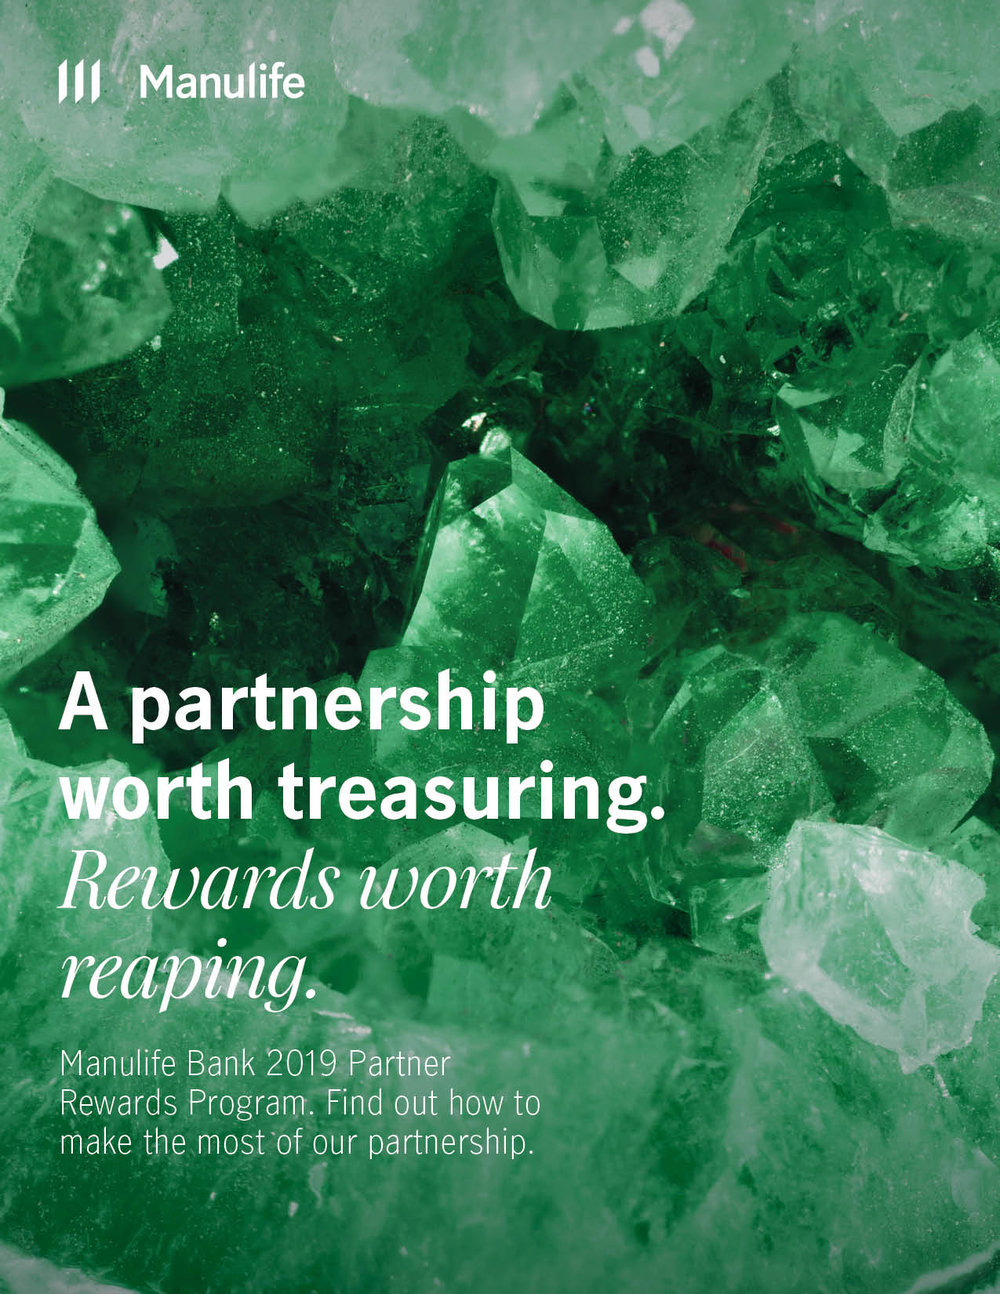 MANULIFE PARTNERSHIP PROGRAM